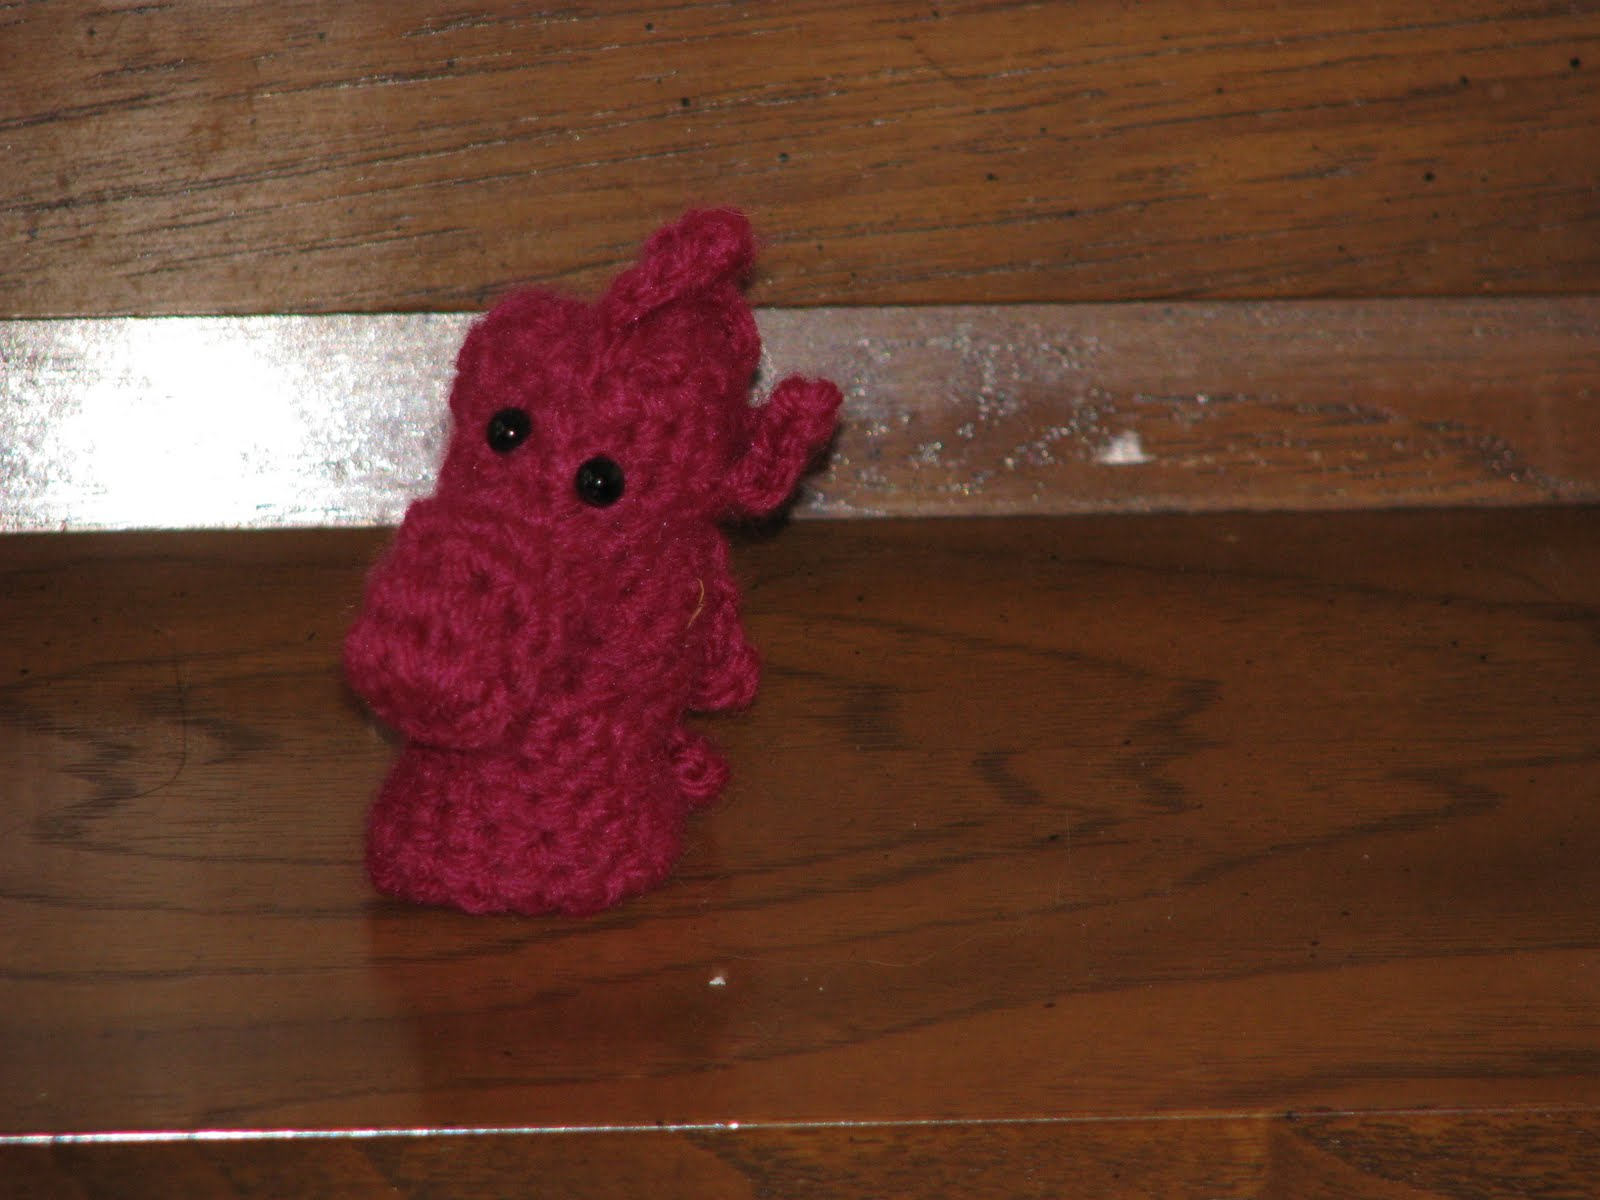 Knitting Patterns For Finger Puppets Free : KNITTED FINGER PUPPET PATTERNS   Free Patterns